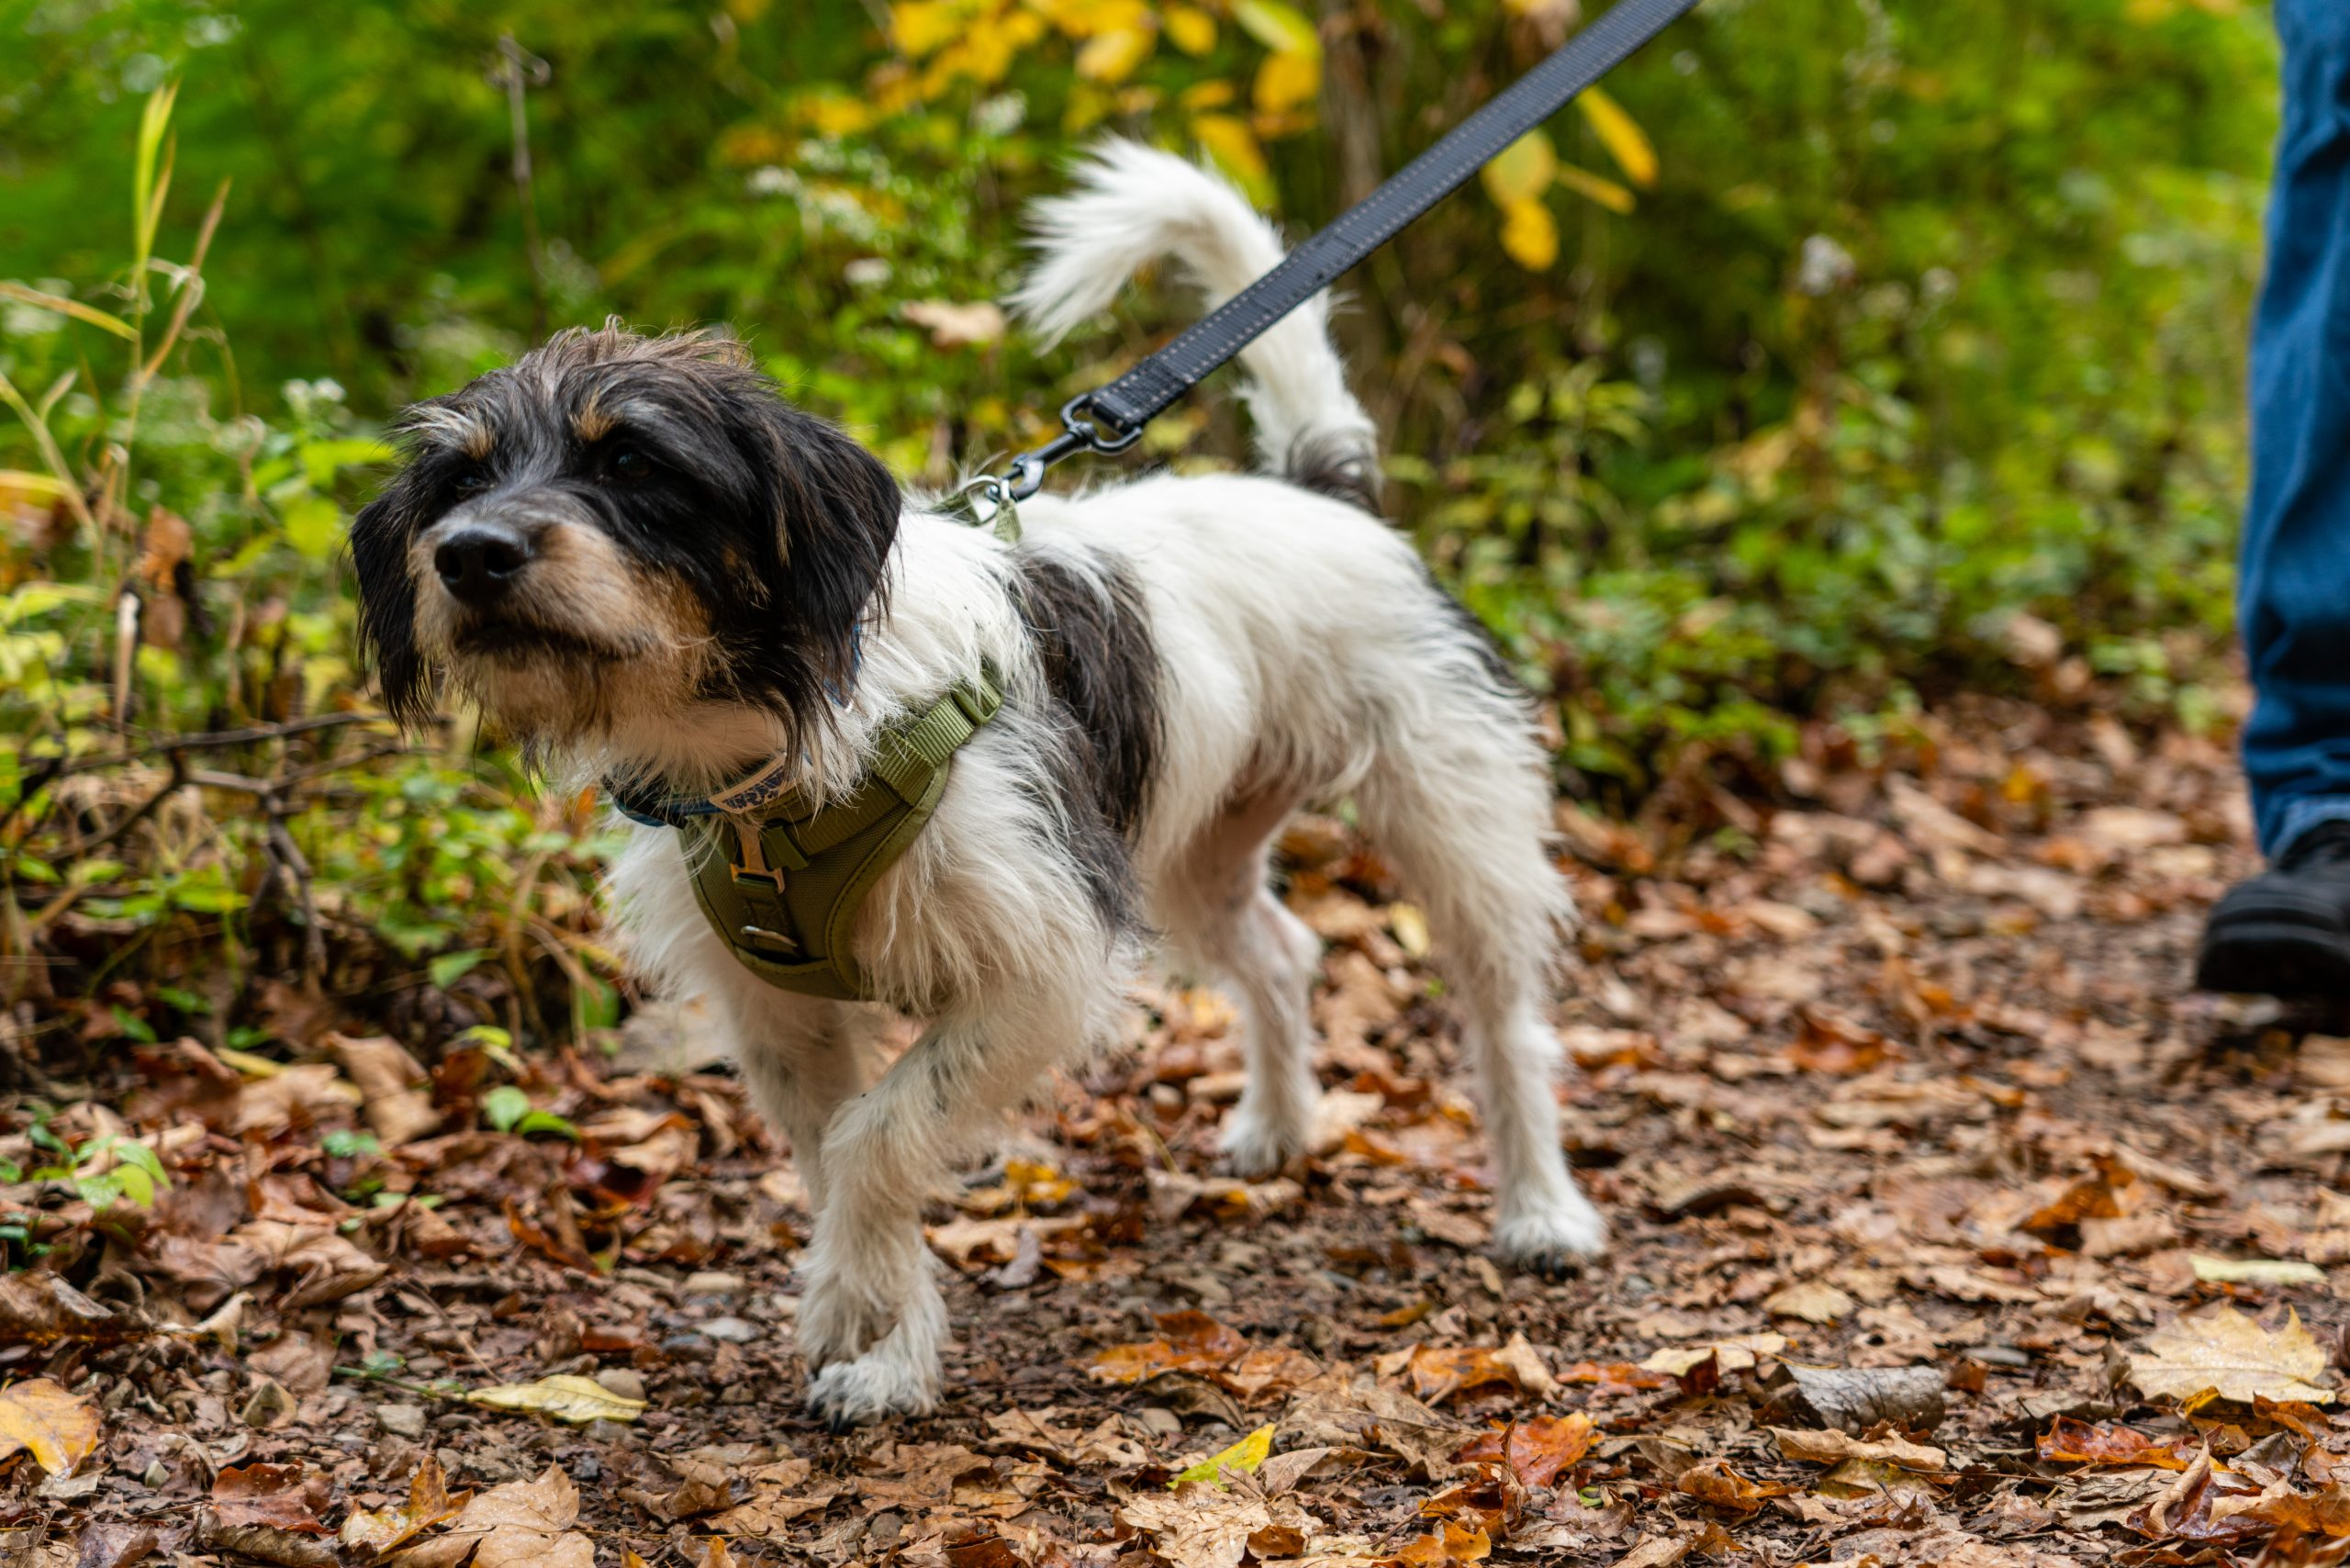 A dog is walked on its leash on a nature trail.